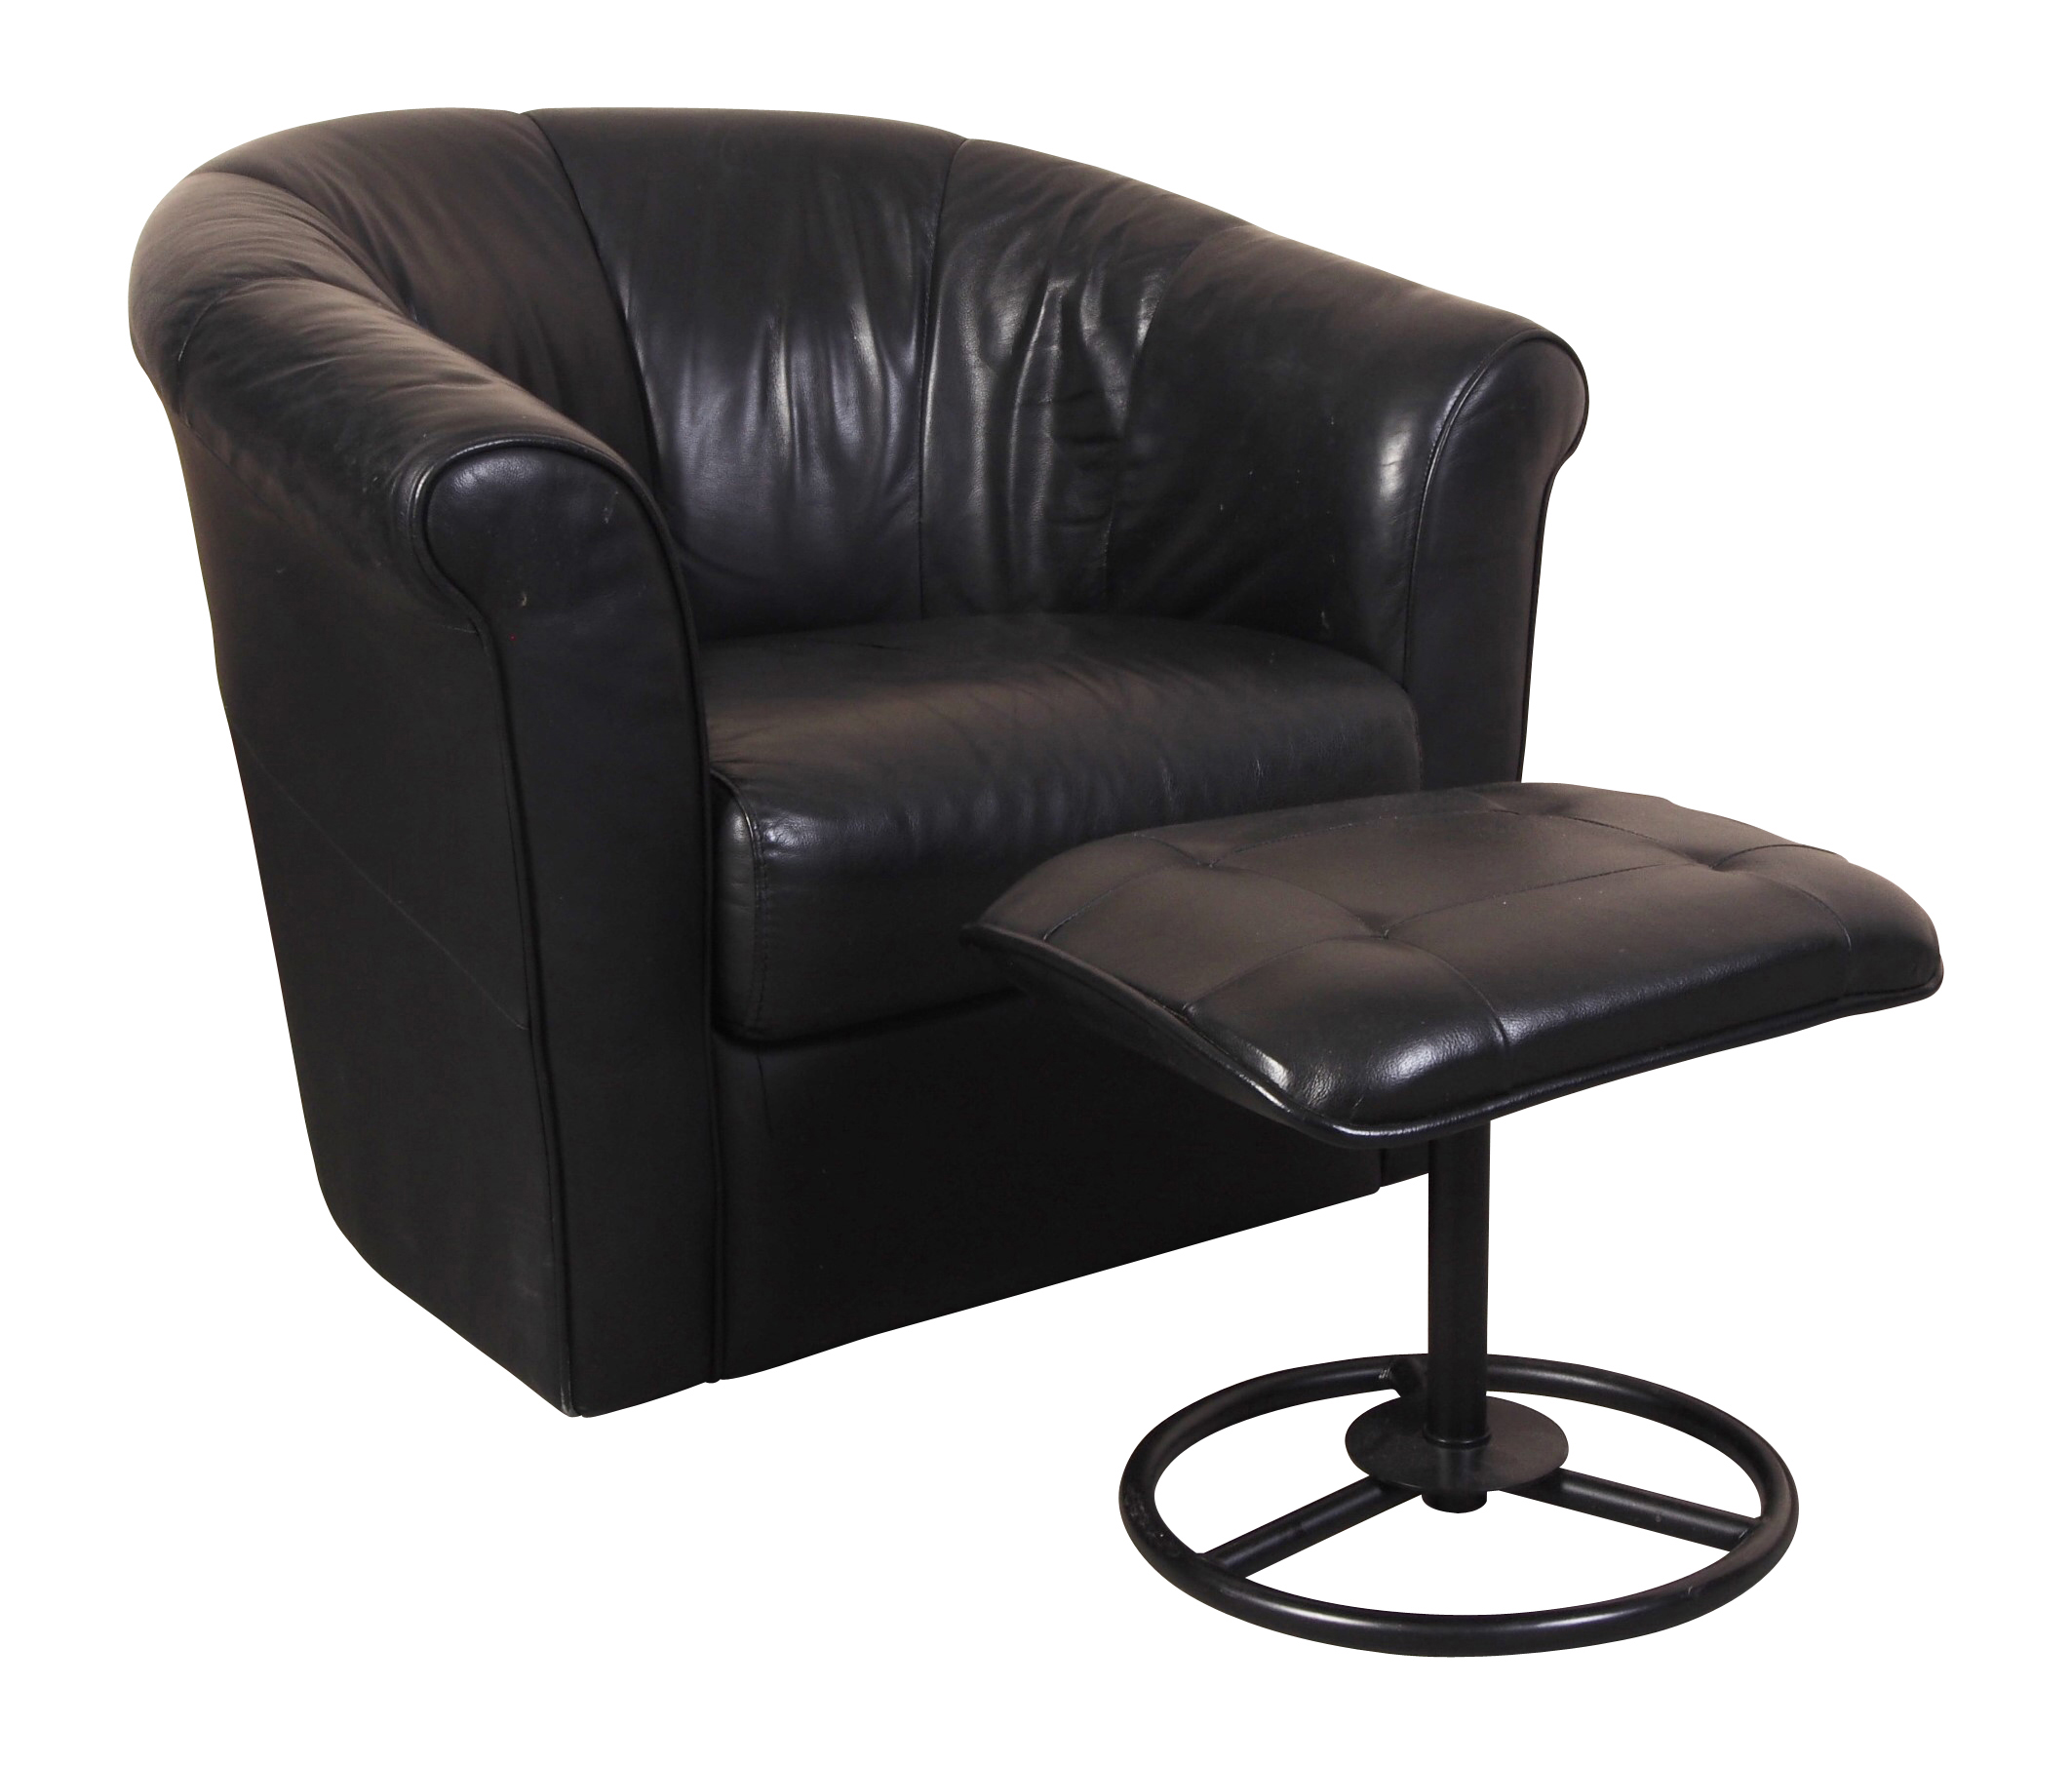 Italsofa black leather swivel tub chair with compatible for Leather swivel tub chair